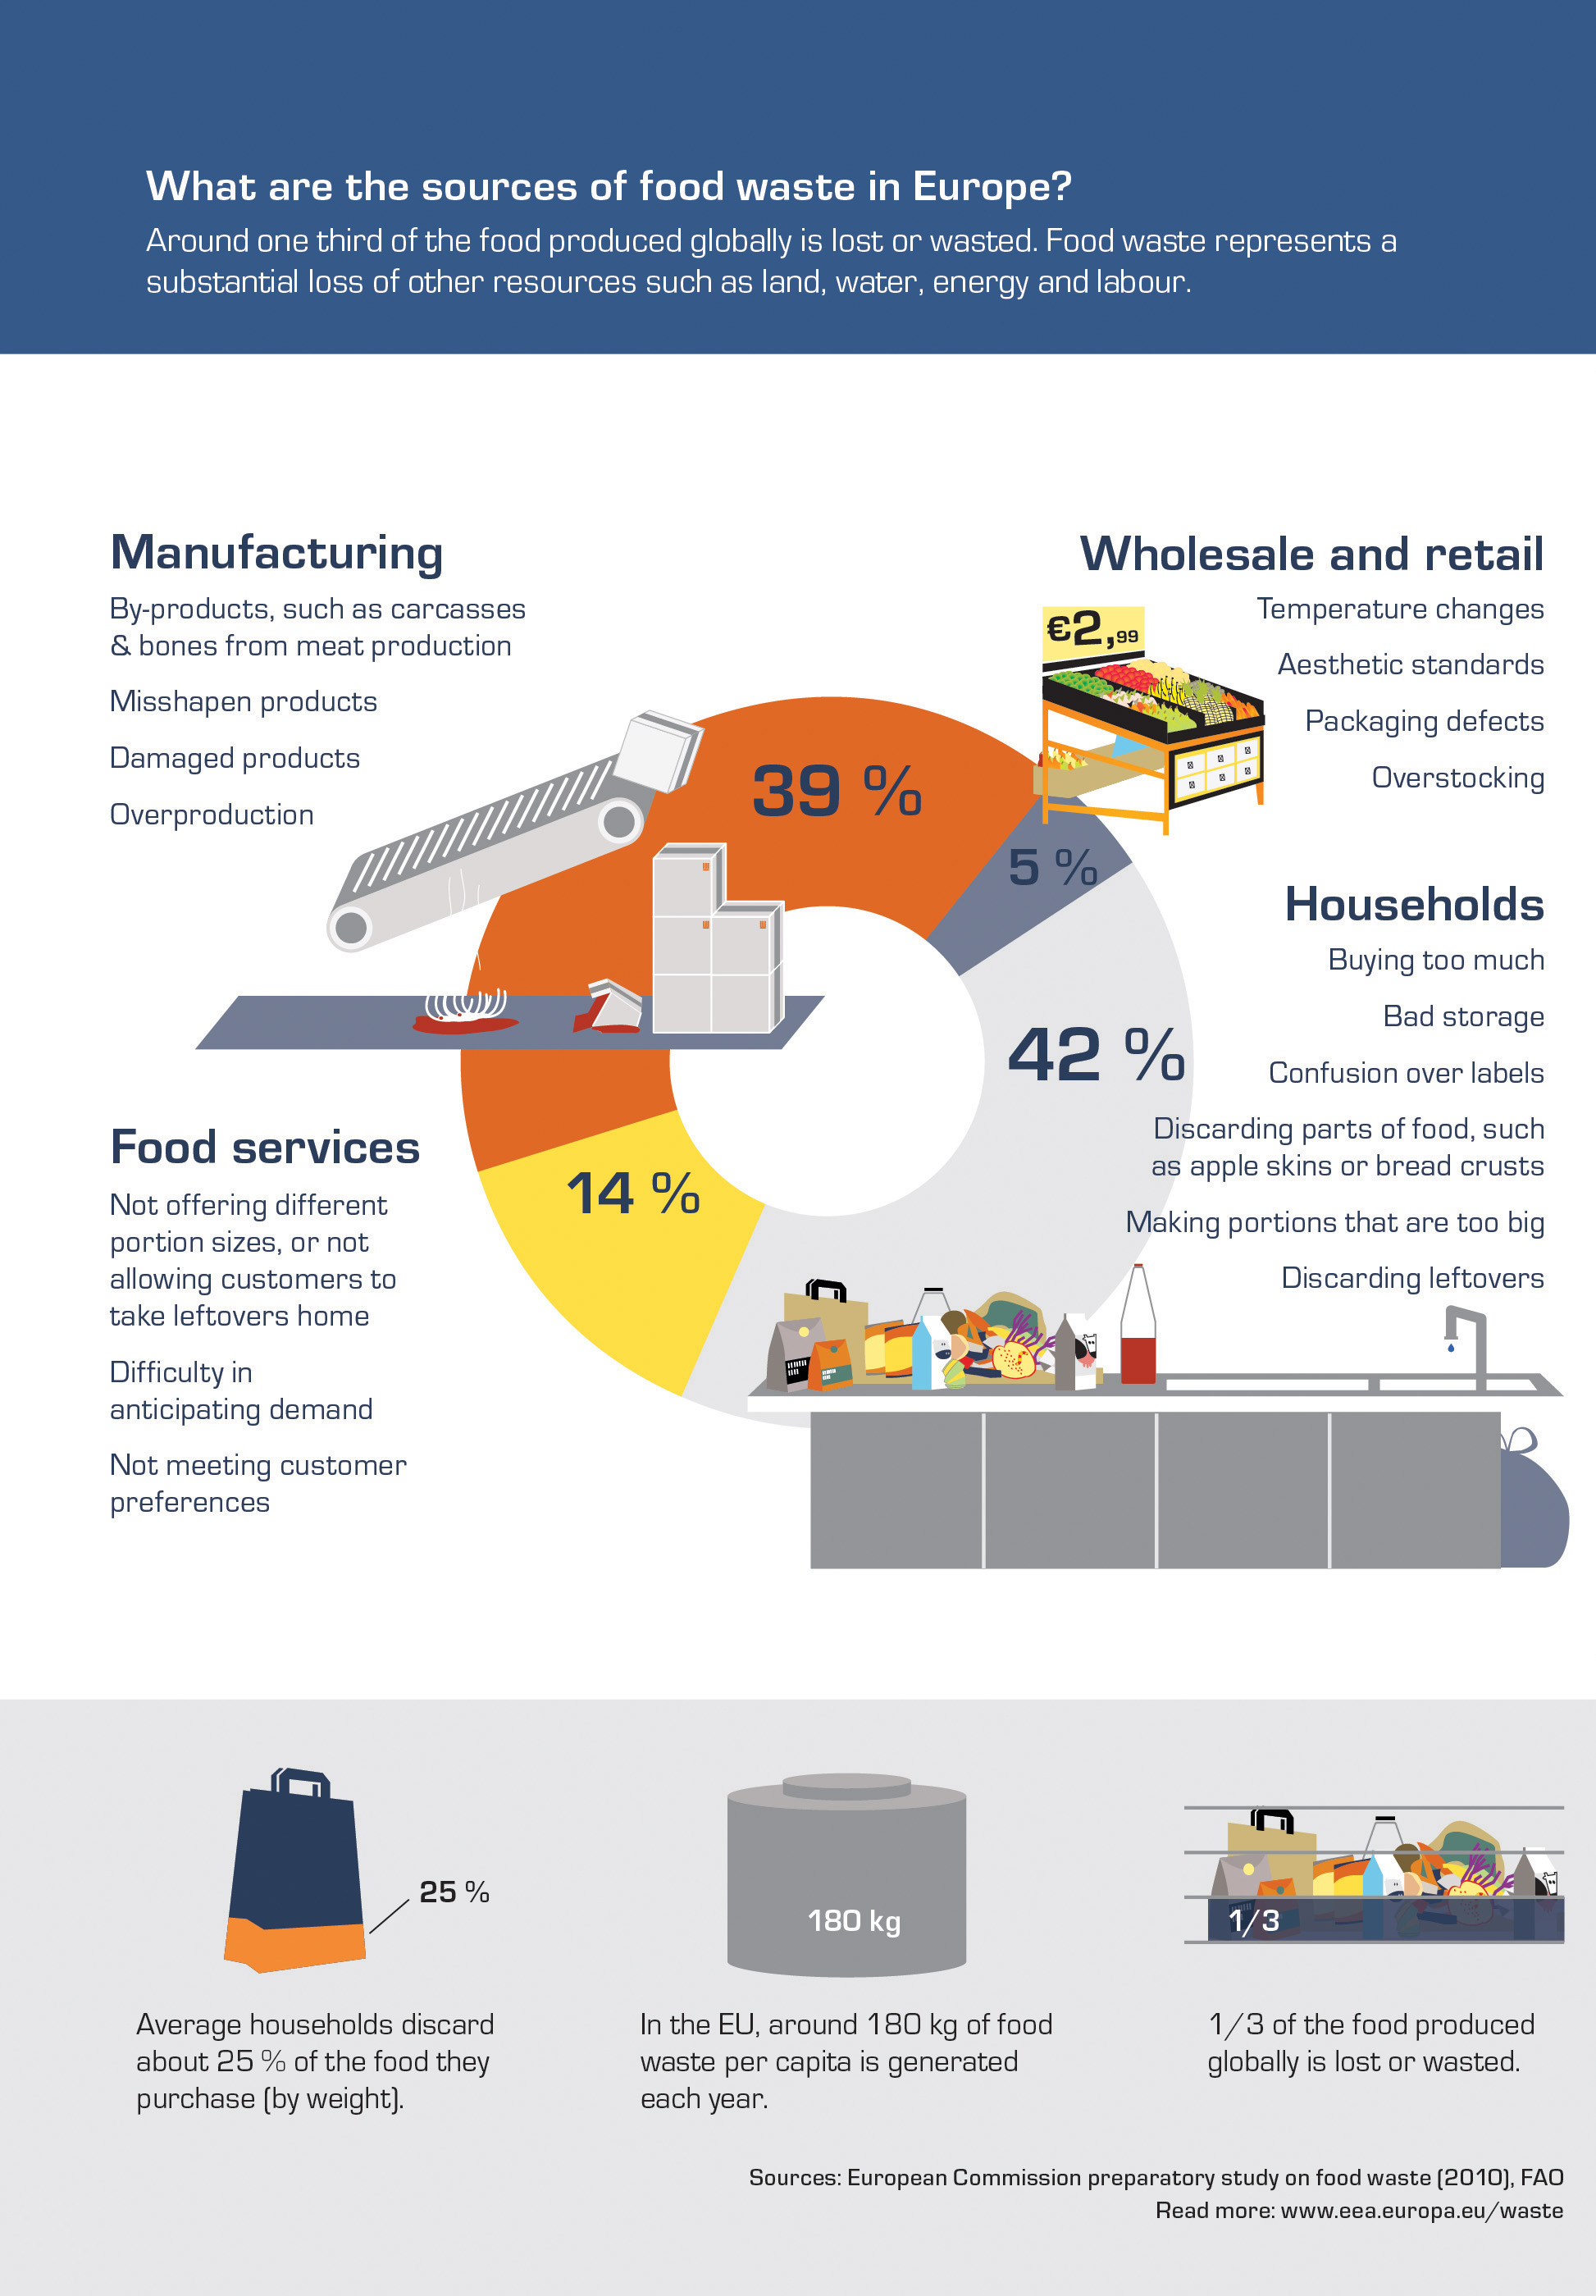 What are the sources of food waste in Europe?